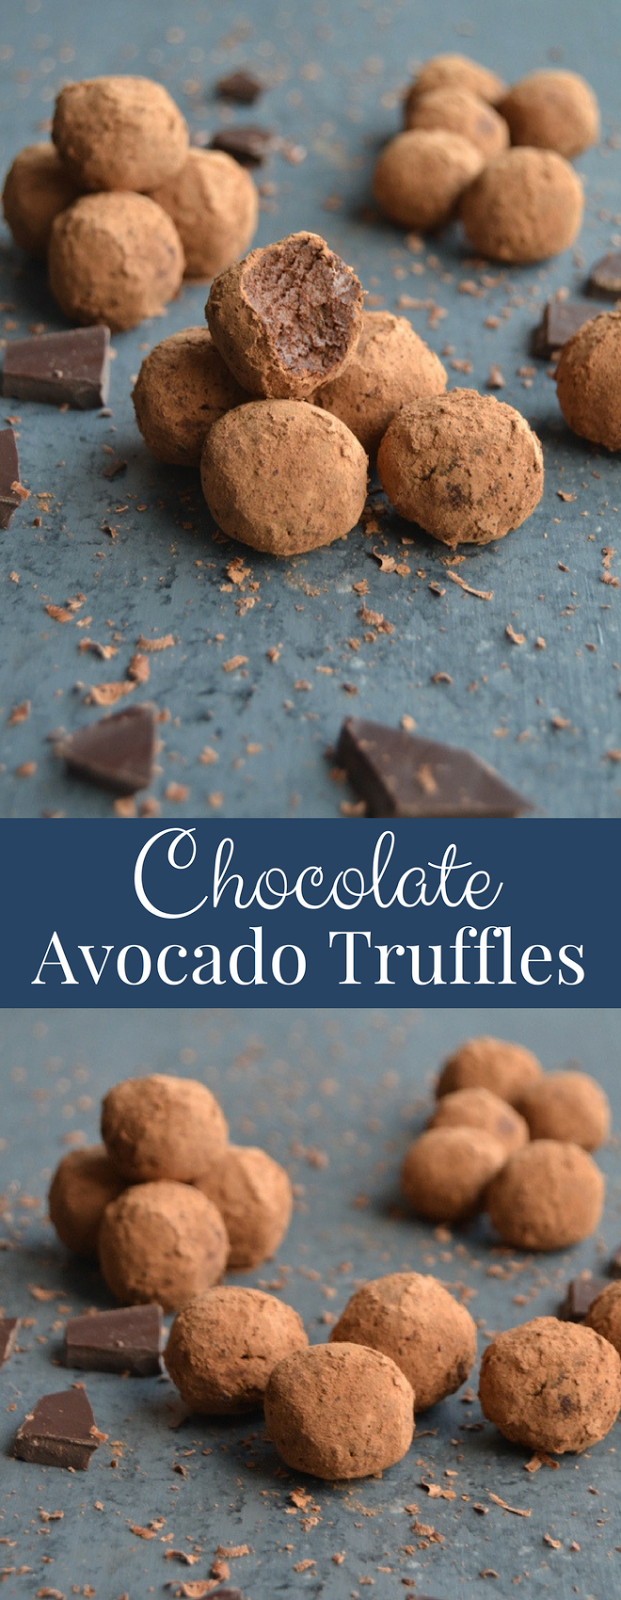 Chocolate Avocado Truffles contain just 4-ingredients and make the perfect snack or dessert. You won't even notice that these rich and creamy truffles are healthier! www.nutritionistreviews.com